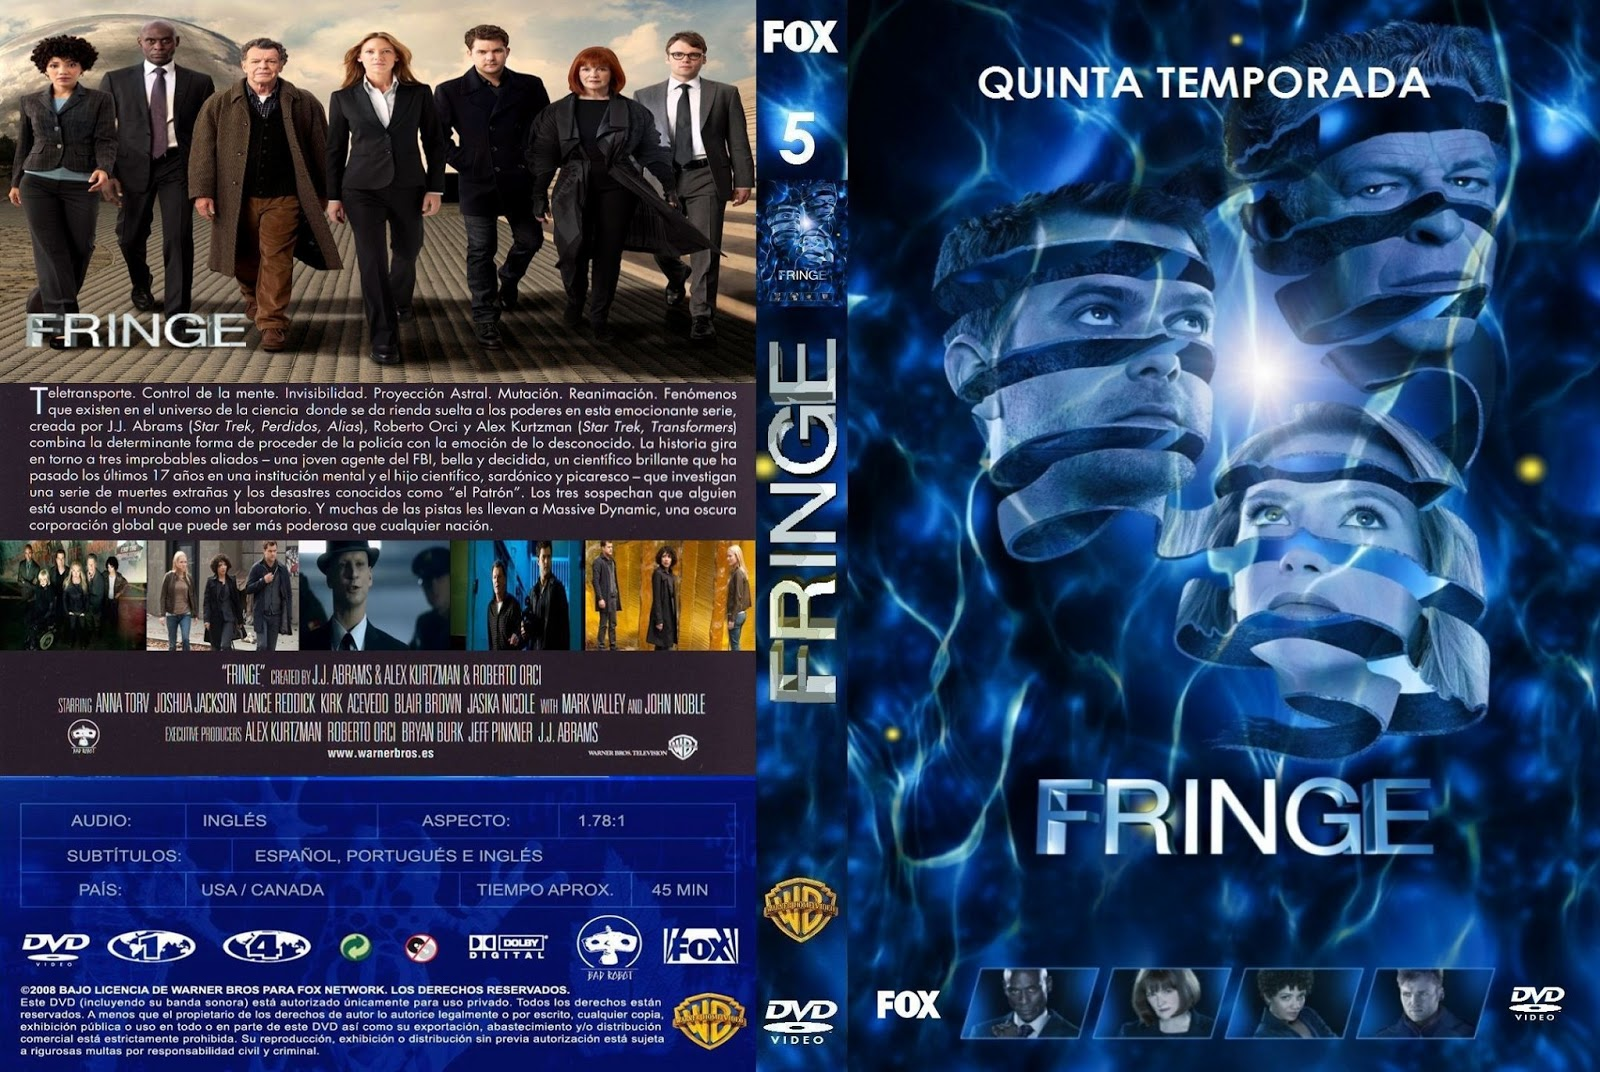 DVD - PS2 - SERIES - PROGRAMAS: Serie - Fringe - Temporada 5 ( 4 DVD ...